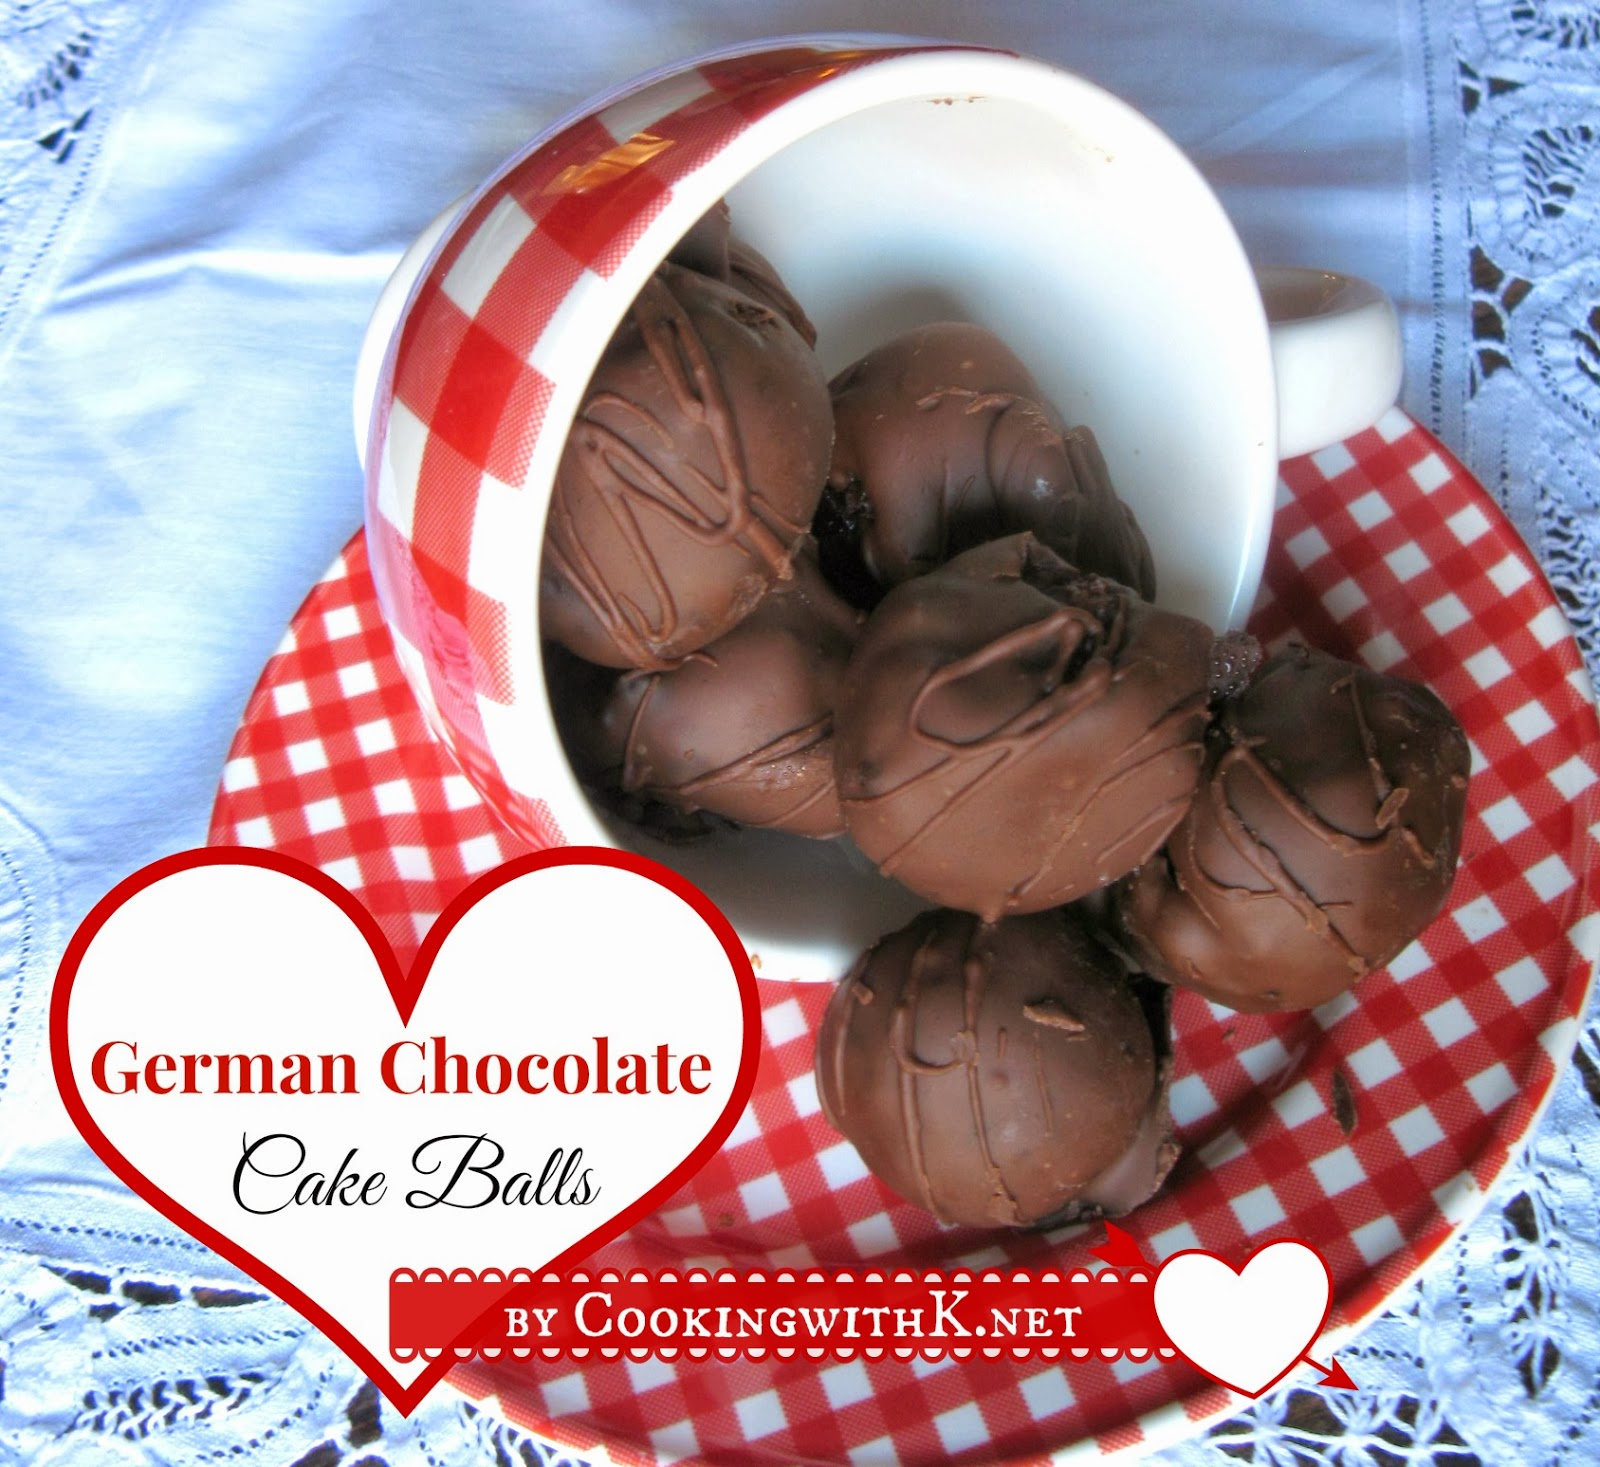 German Chocolate Cake Balls